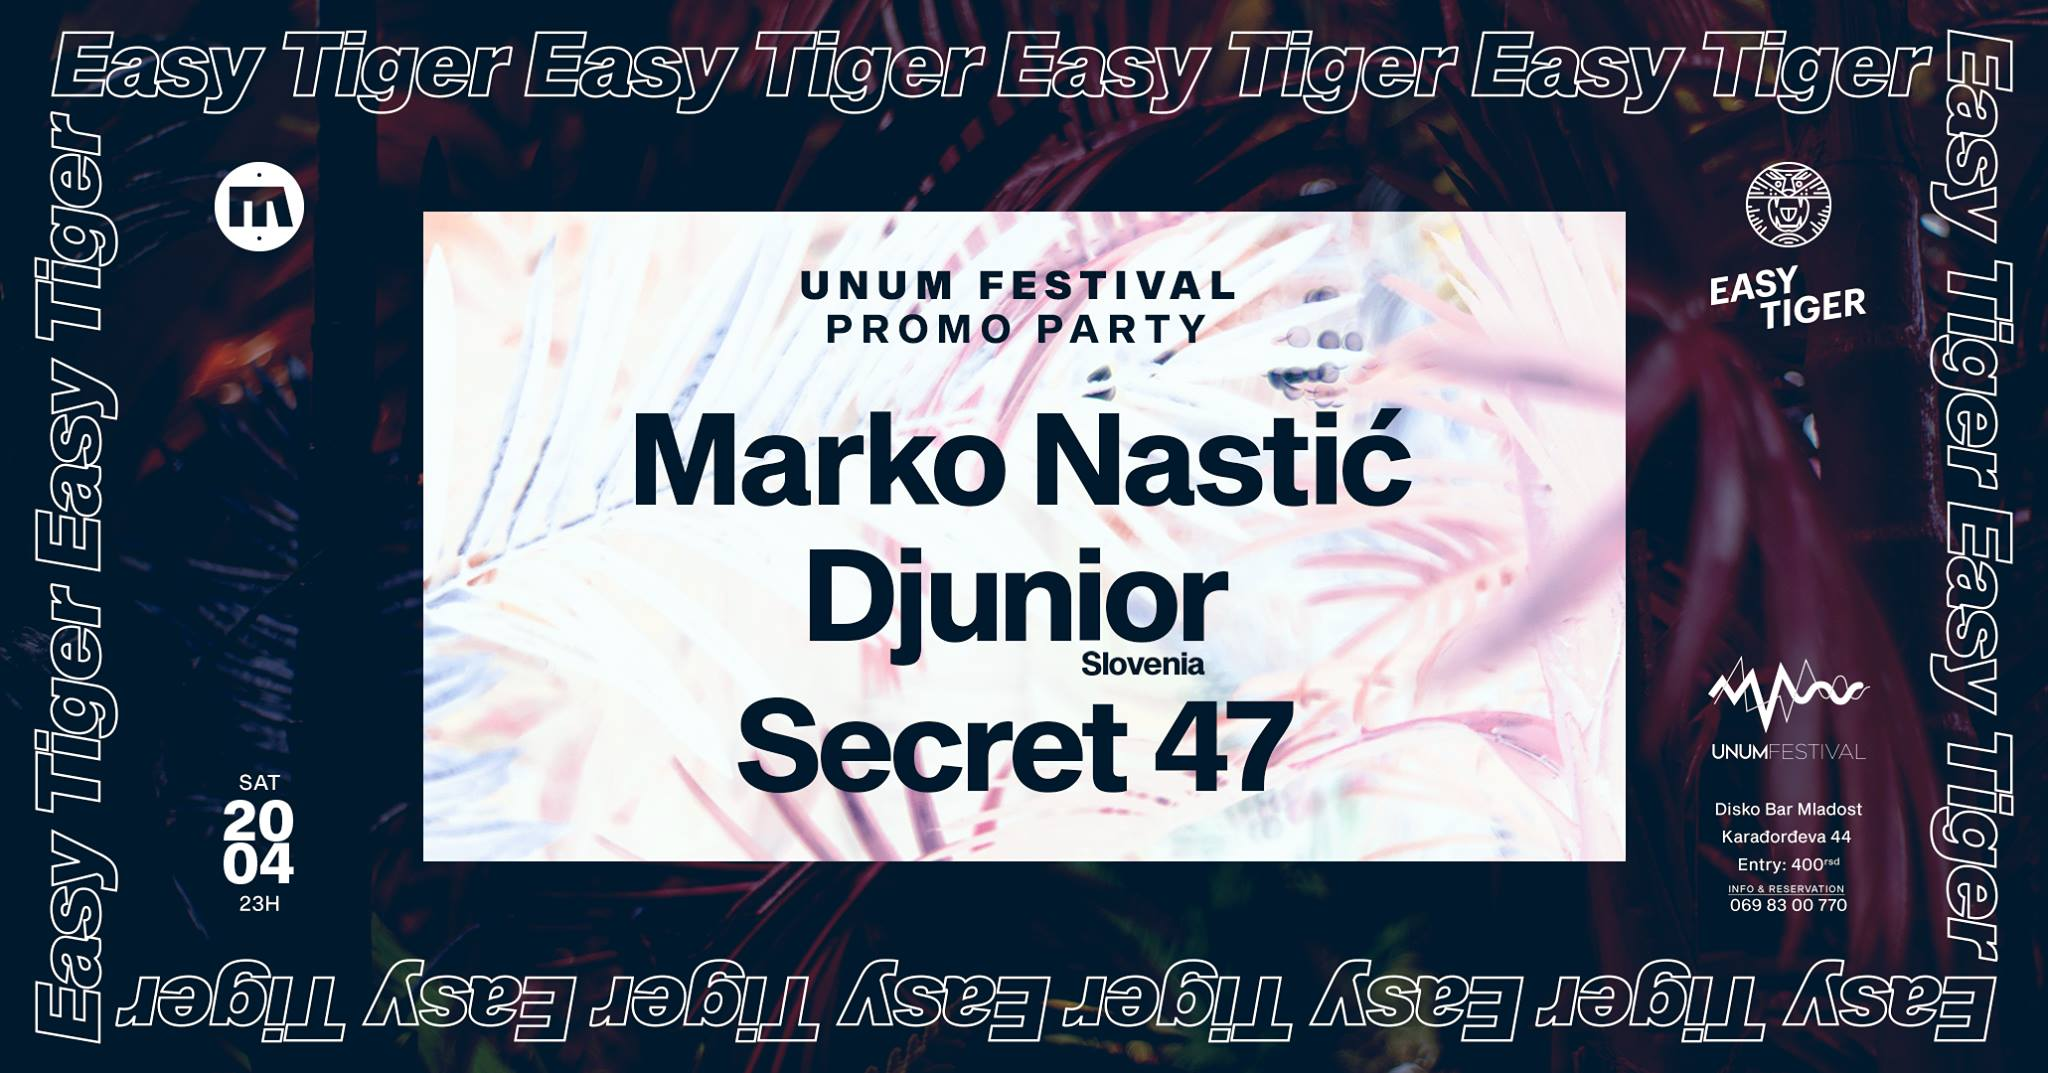 UNUM Pre-Party in Belgrade w/ Marko Nastic, Djunior & Secret 47